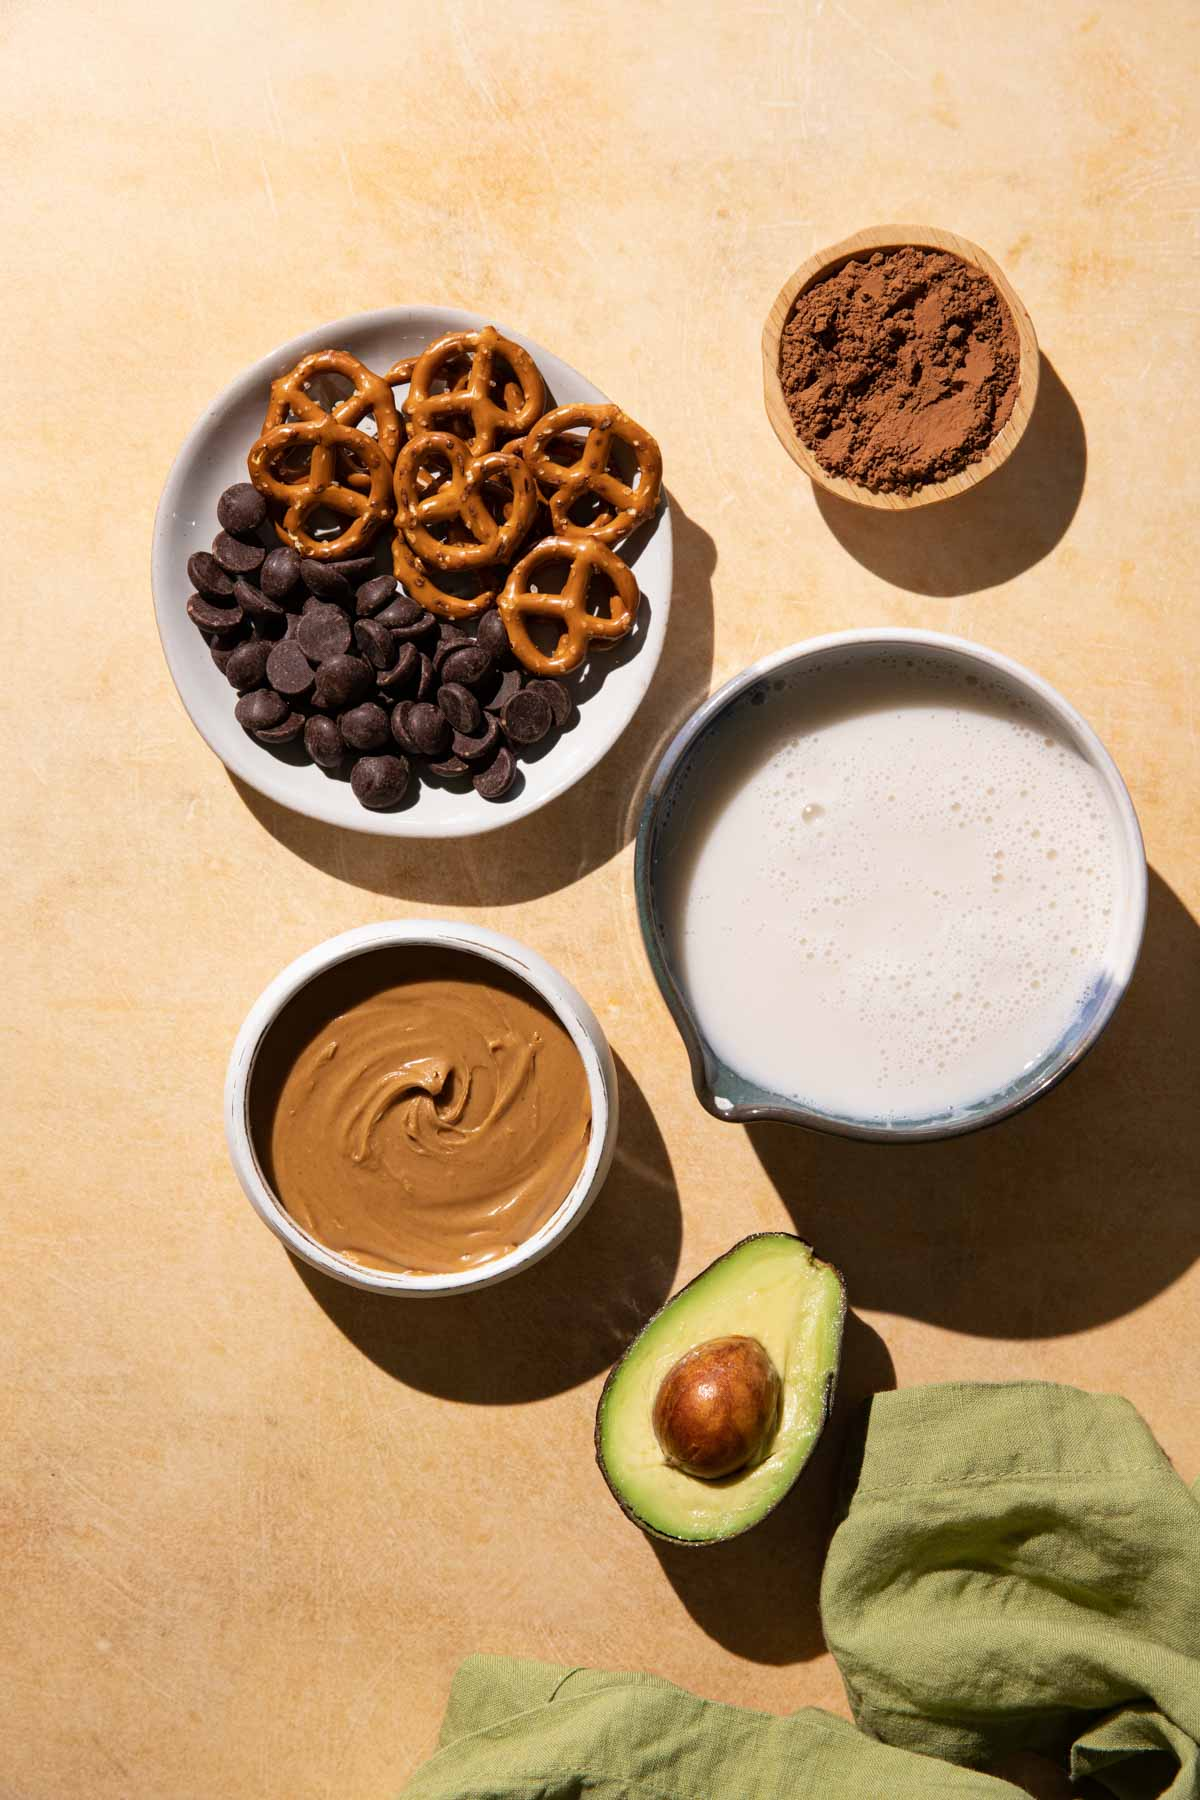 Ingredients for Chocolate Peanut Butter Smoothie in bowls on a yellow background with a green linen cloth